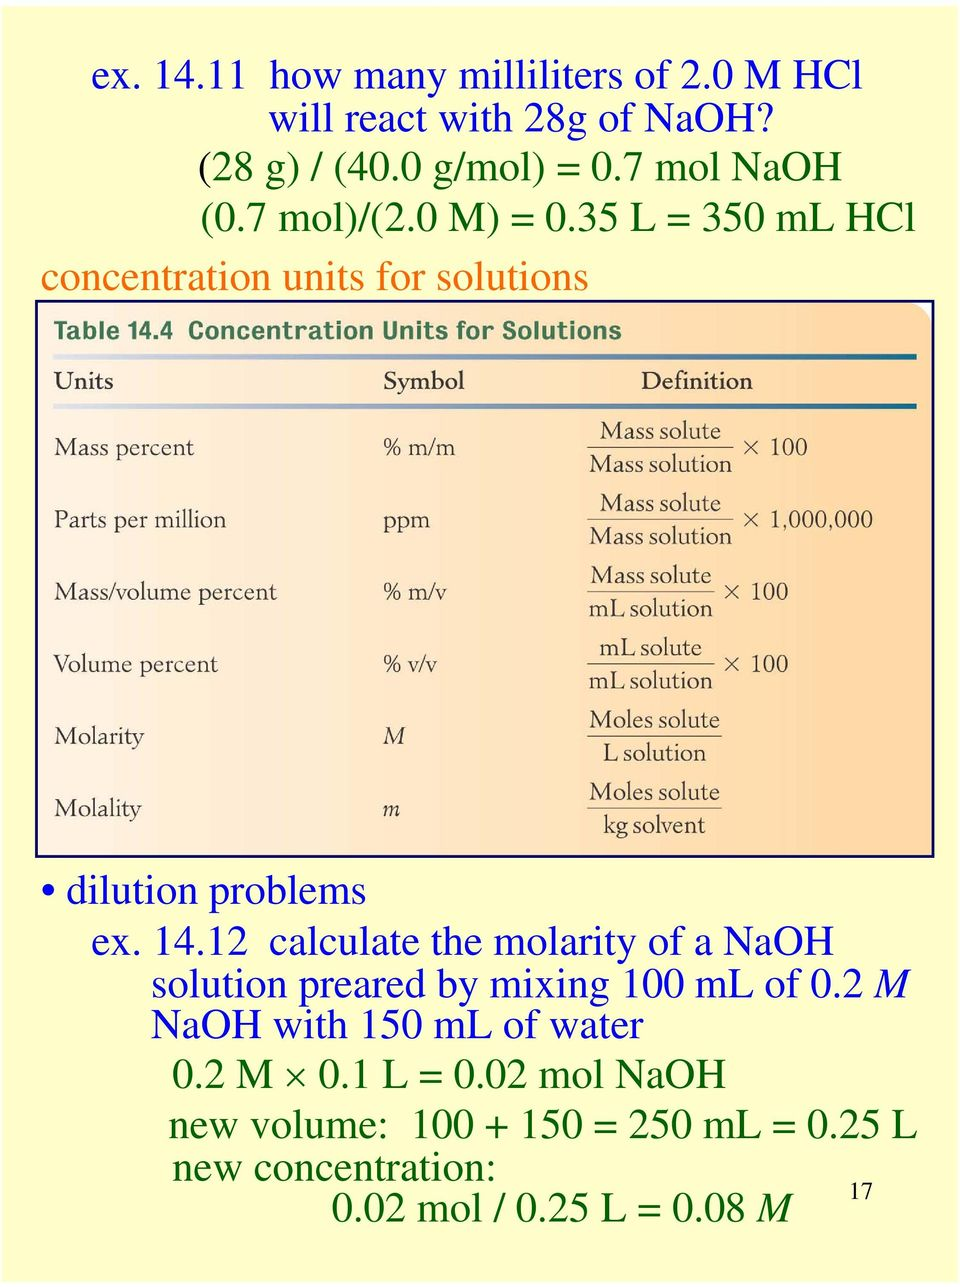 14.12 calculate the molarity of a NaOH solution preared by mixing 100 ml of 0.